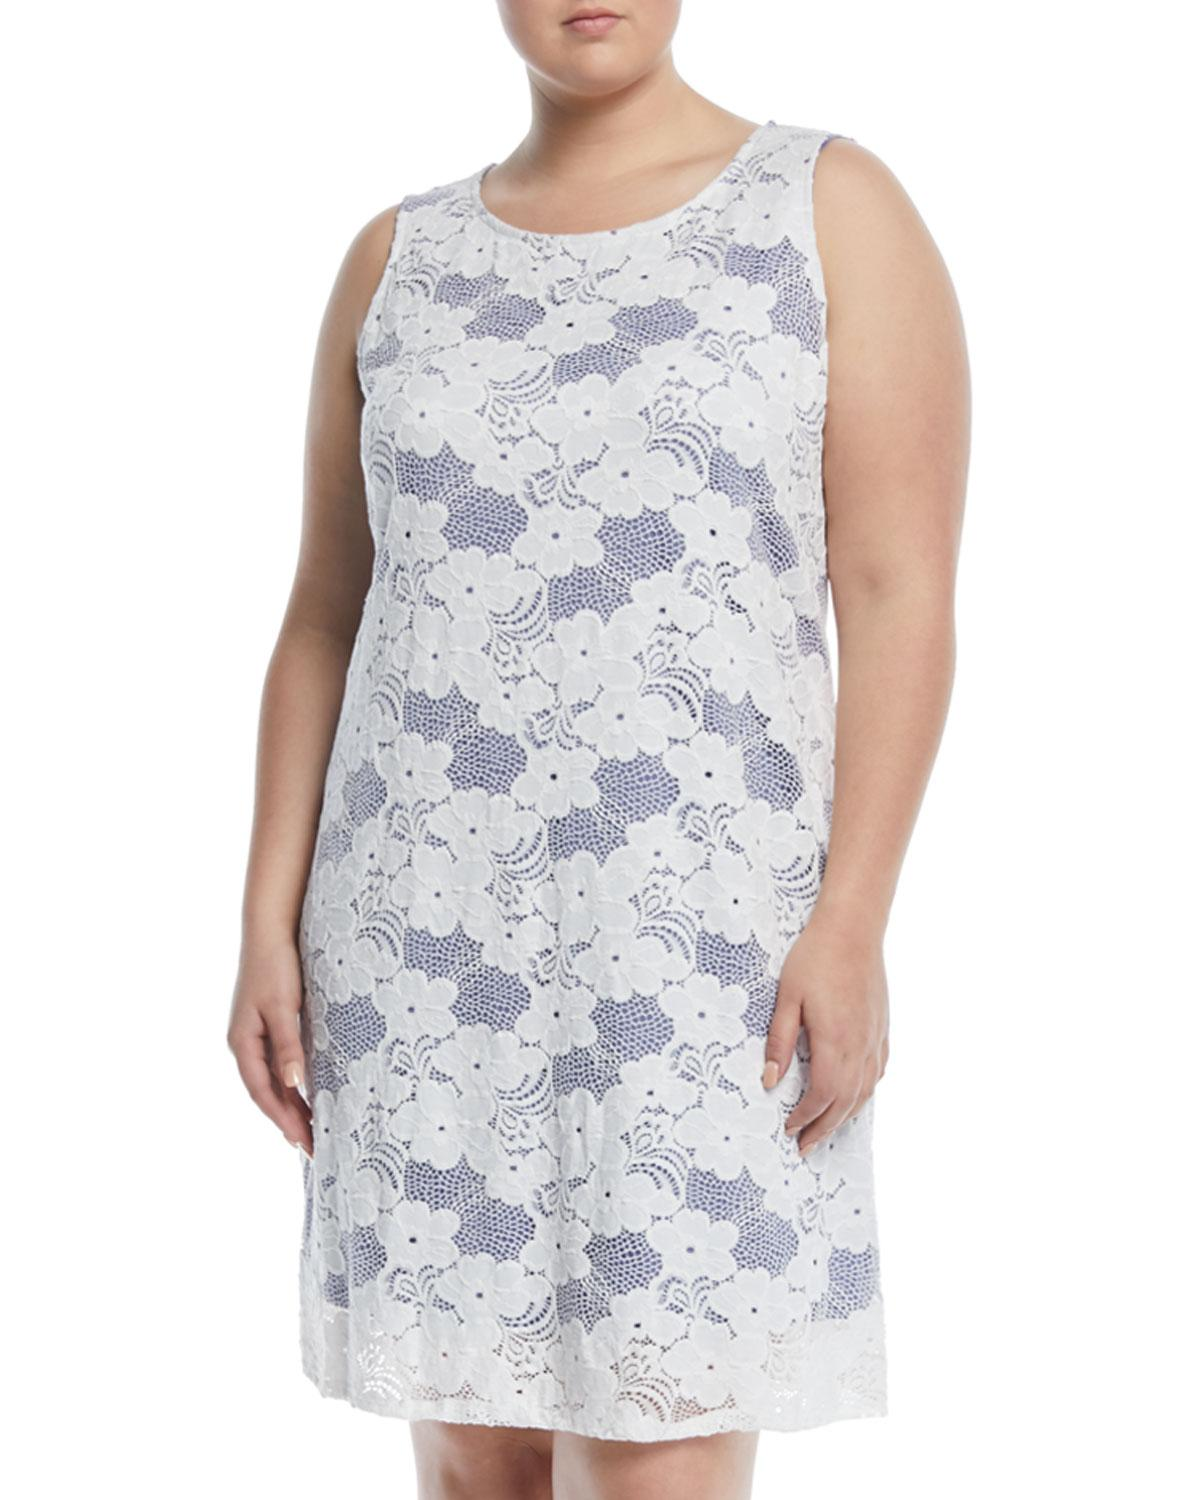 Sleeveless Floral-Lace Dress, Plus Size in Blue